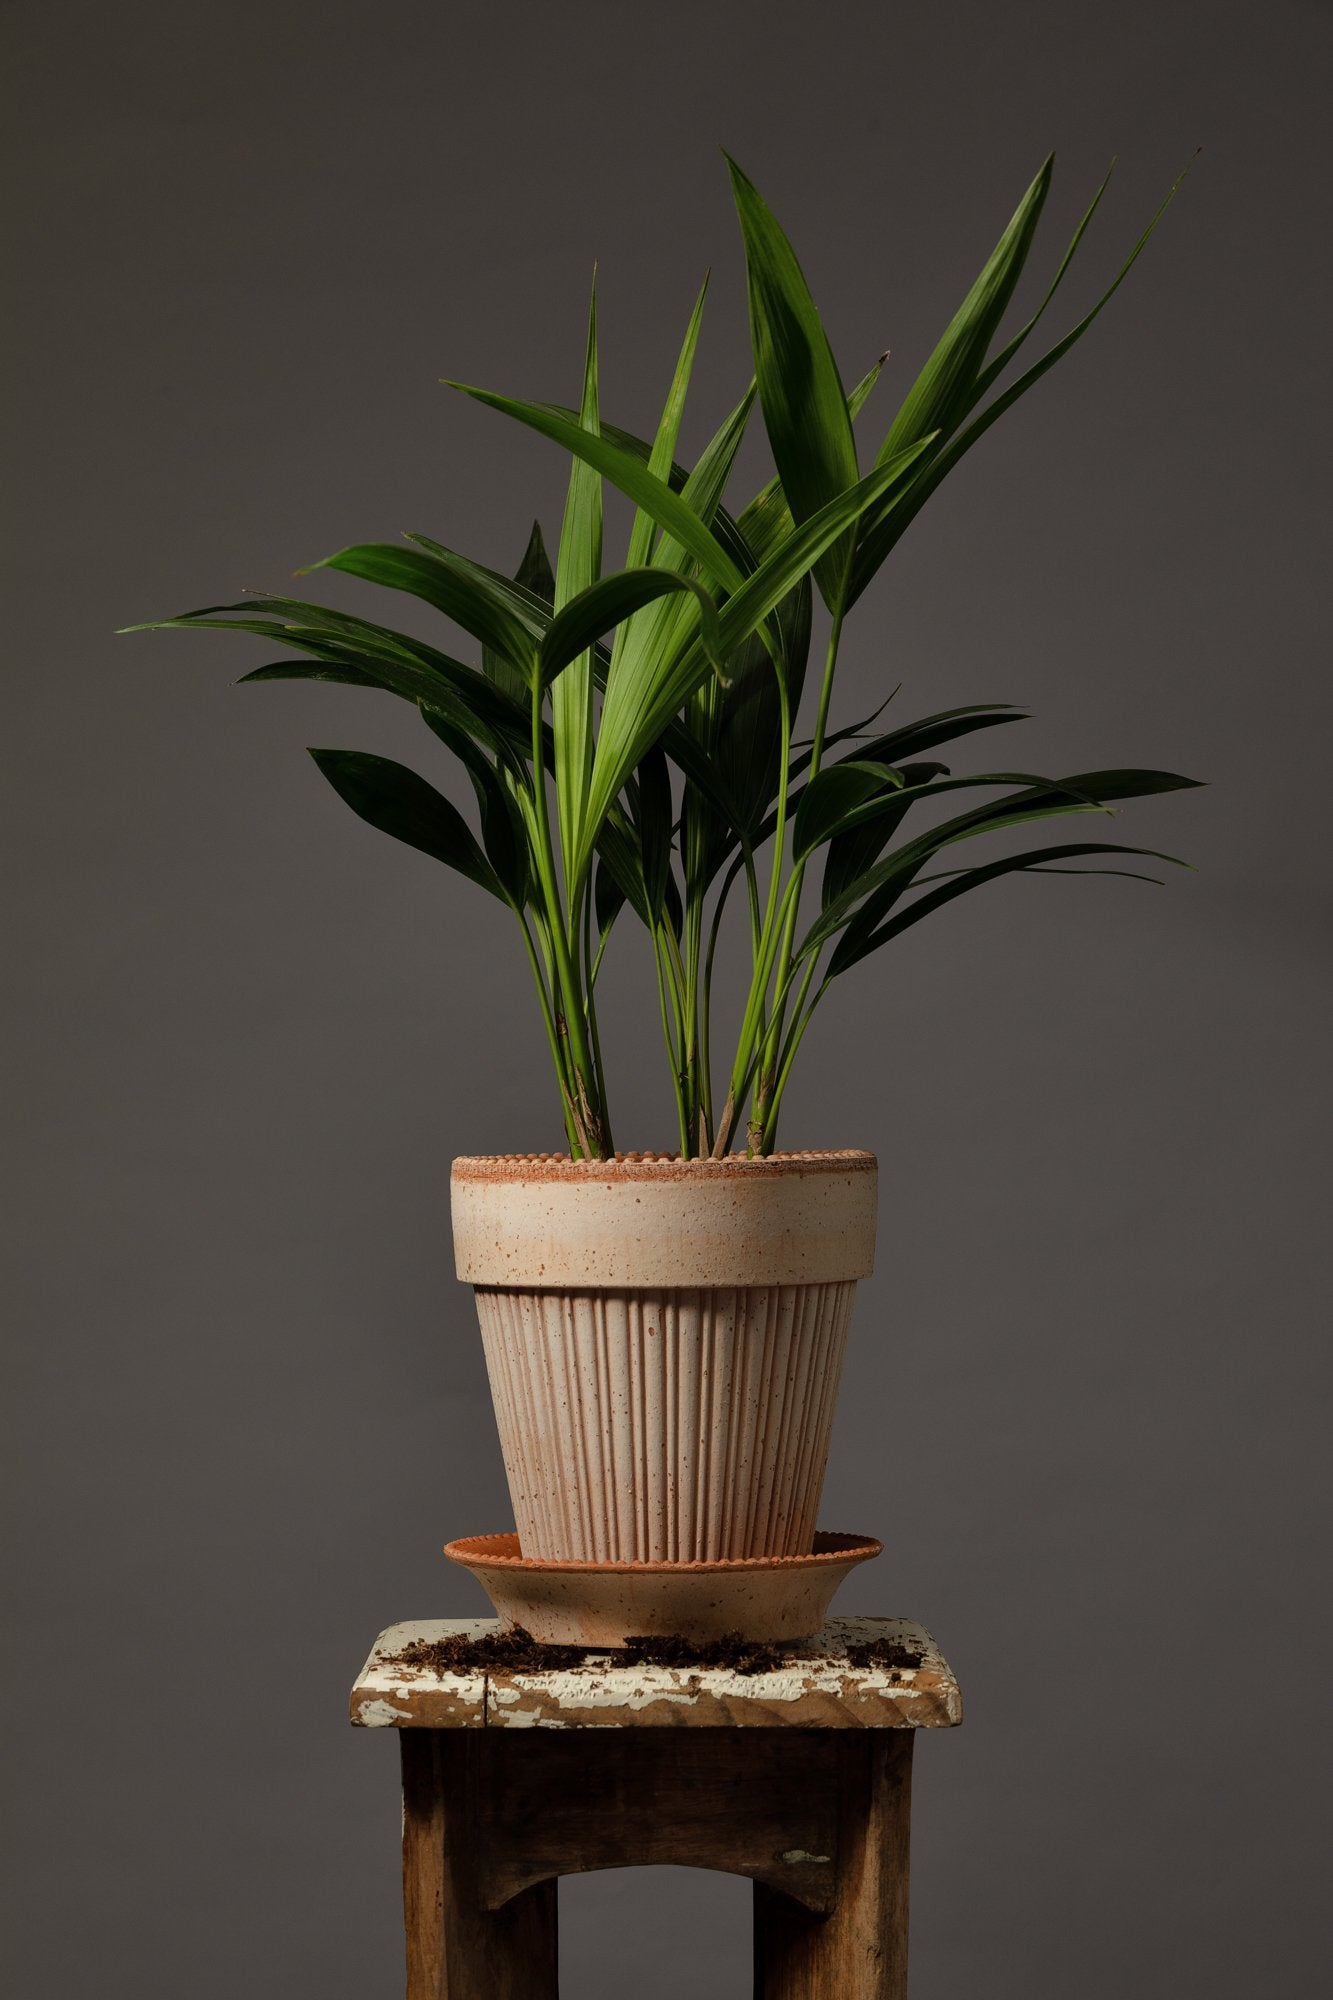 The Kentia Palm, replanted in a Bergs Simona 16cm Rosa handmade Italian house plant pot.